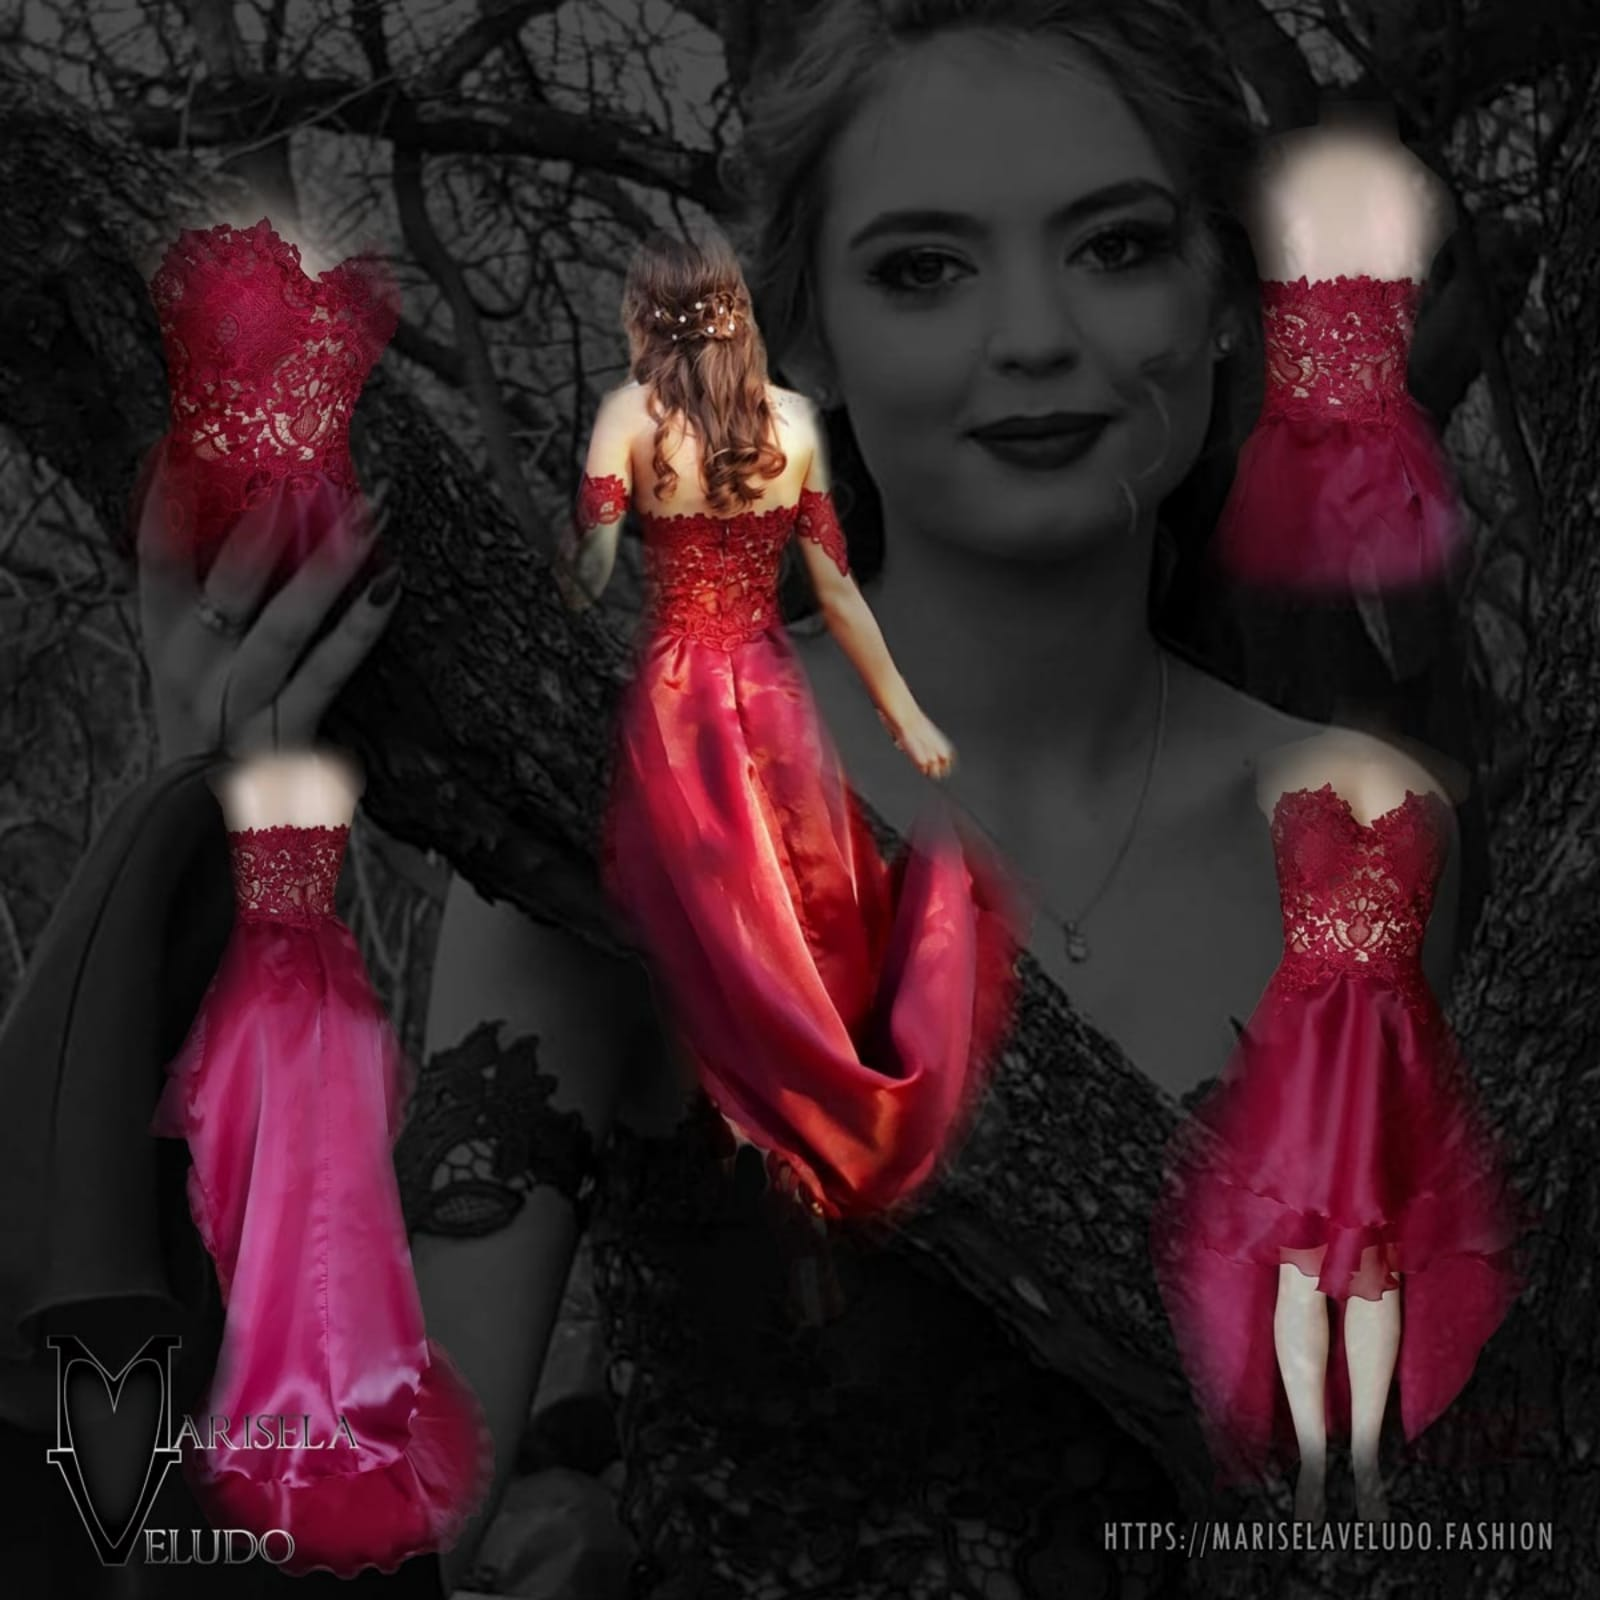 Dark red high low evening dress 11 the perfect dark red evening dress for your prom night if you want to look elegant yet adorable. With a lace bodice and a double layer hi - lo flowy bottom for a slight dramatic effect.